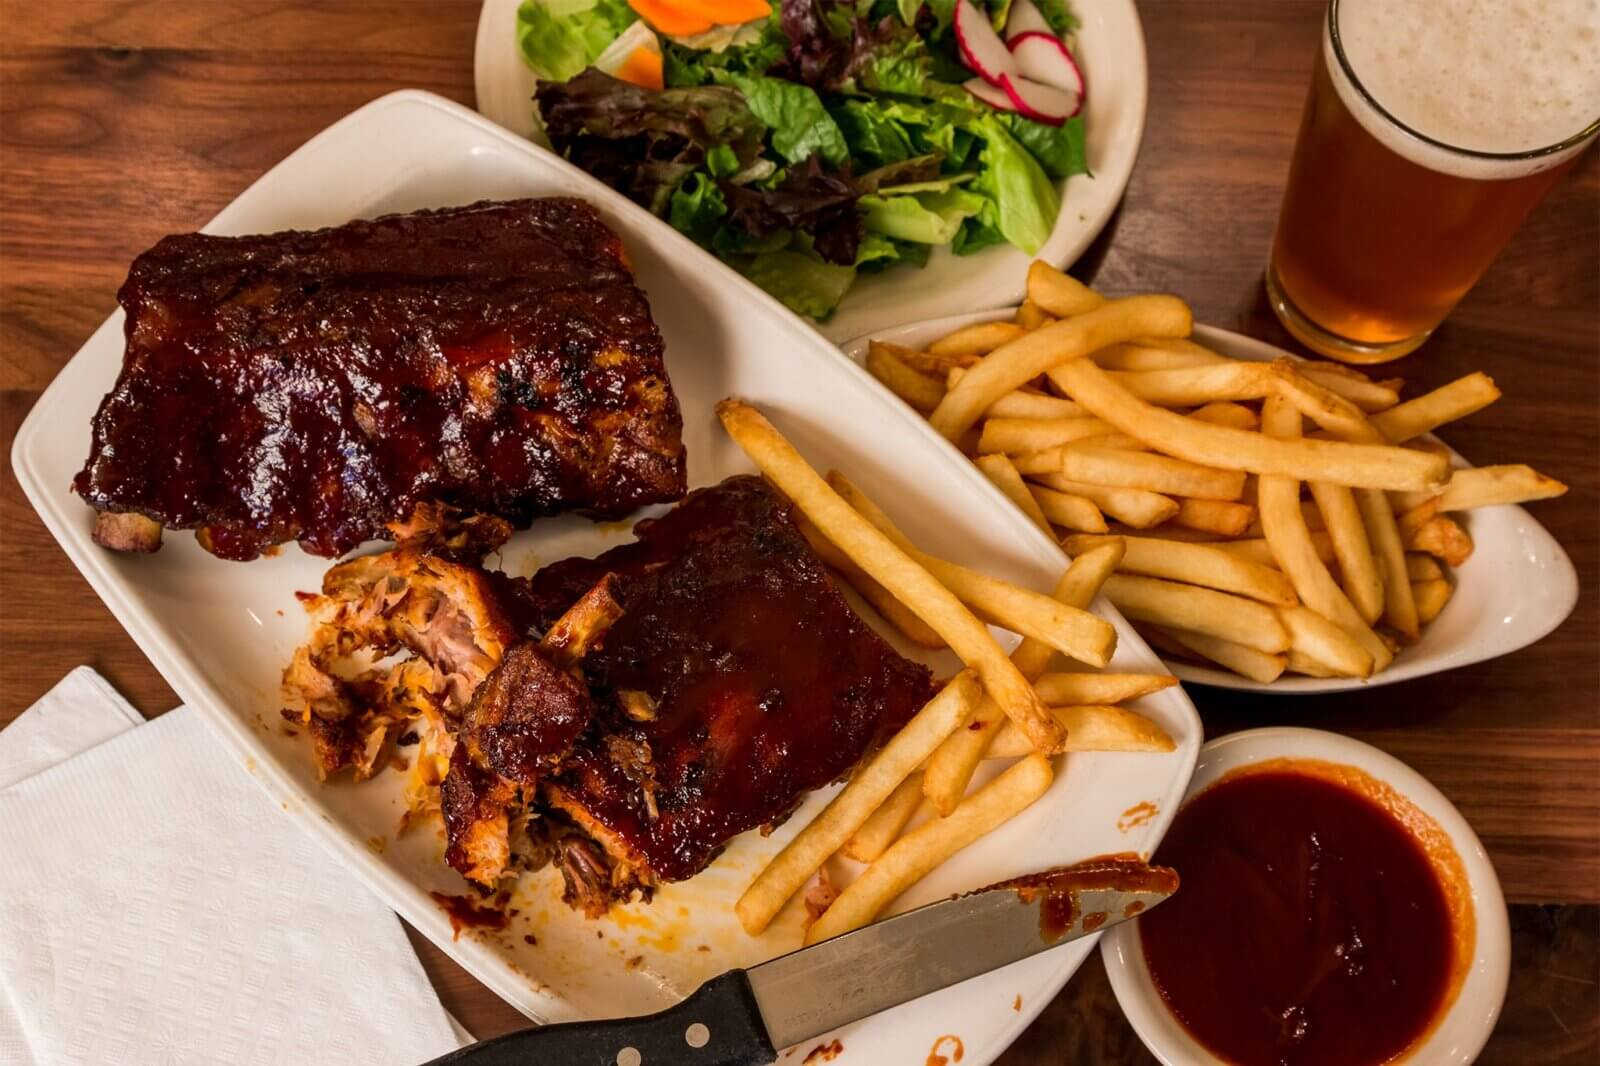 Image of ribs and fries